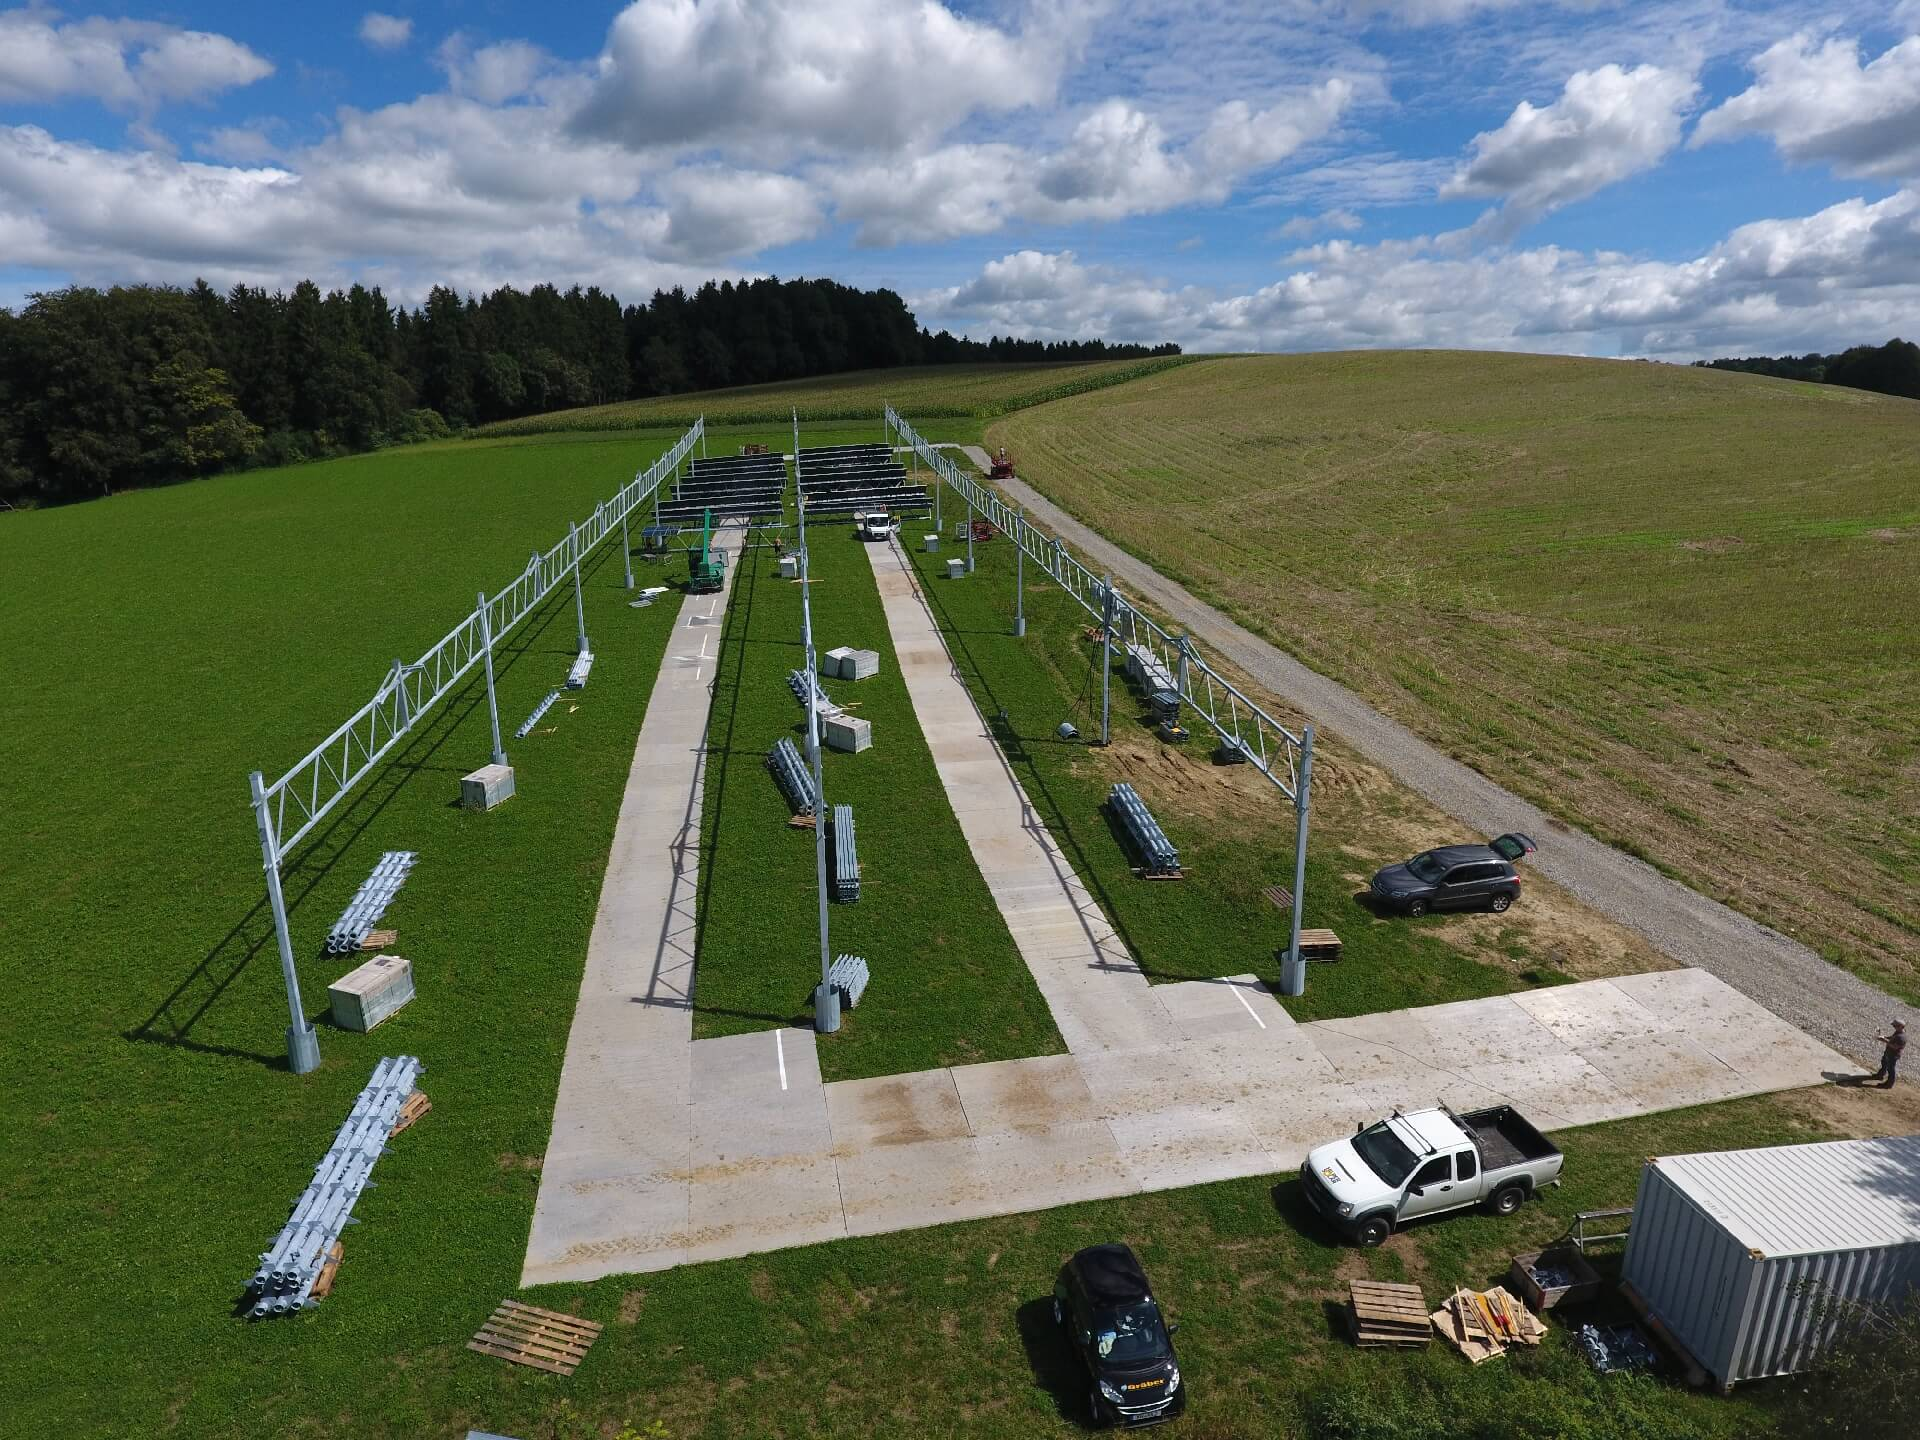 Installation of the agrophotovoltaic pilot system at Heggelbach